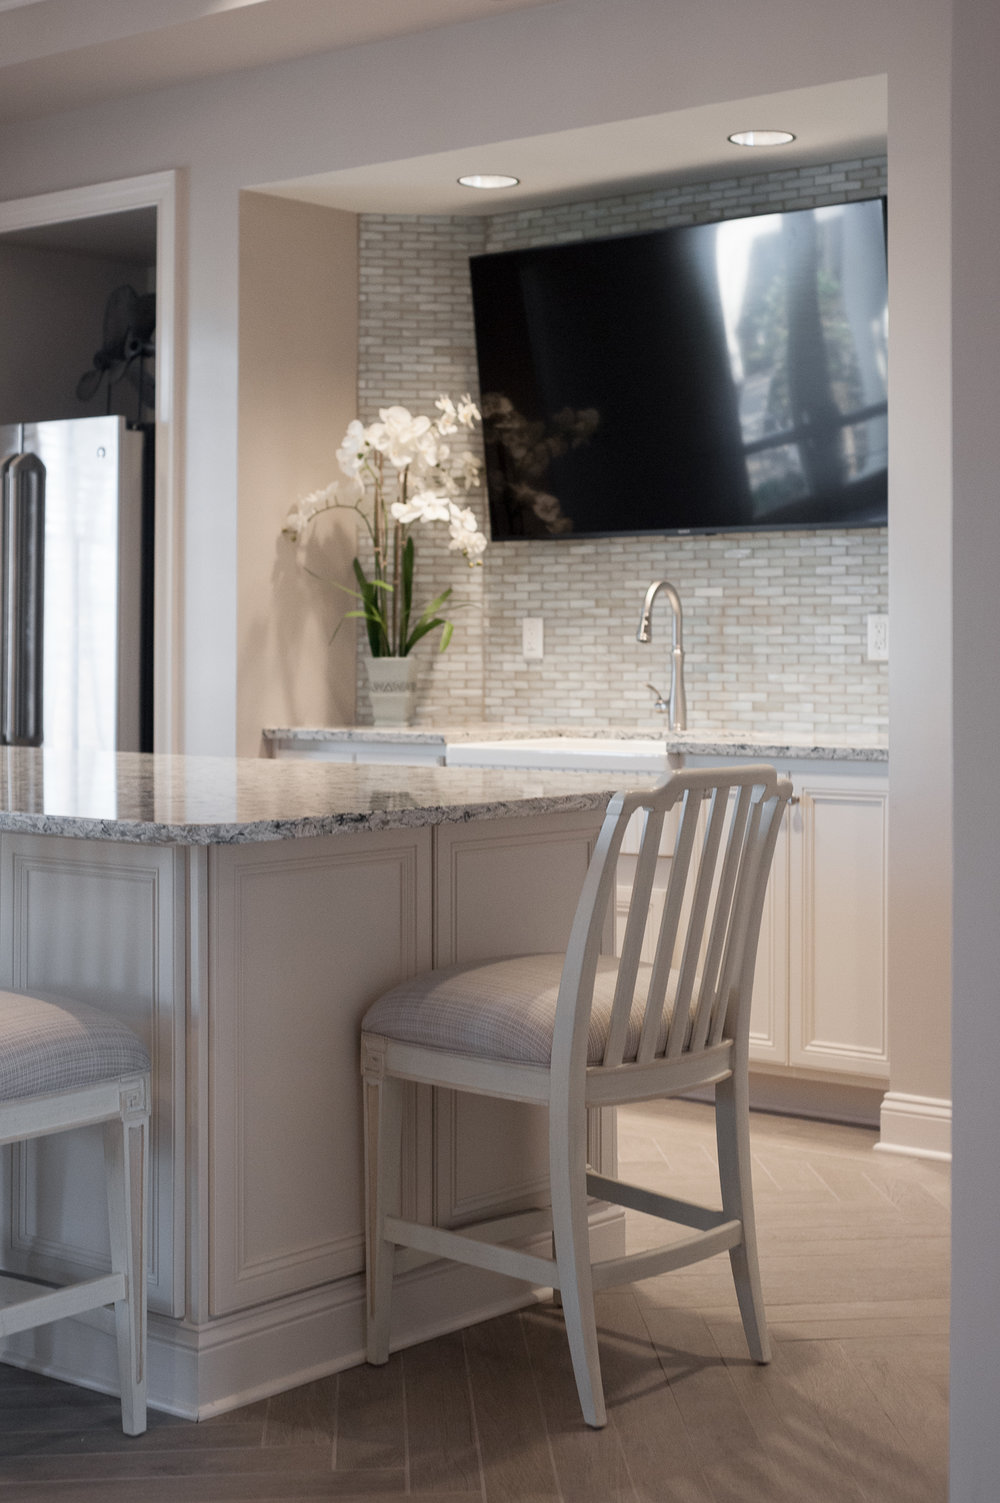 TILE TUESDAY - 3 Places to Use Glass Mosaic Tile